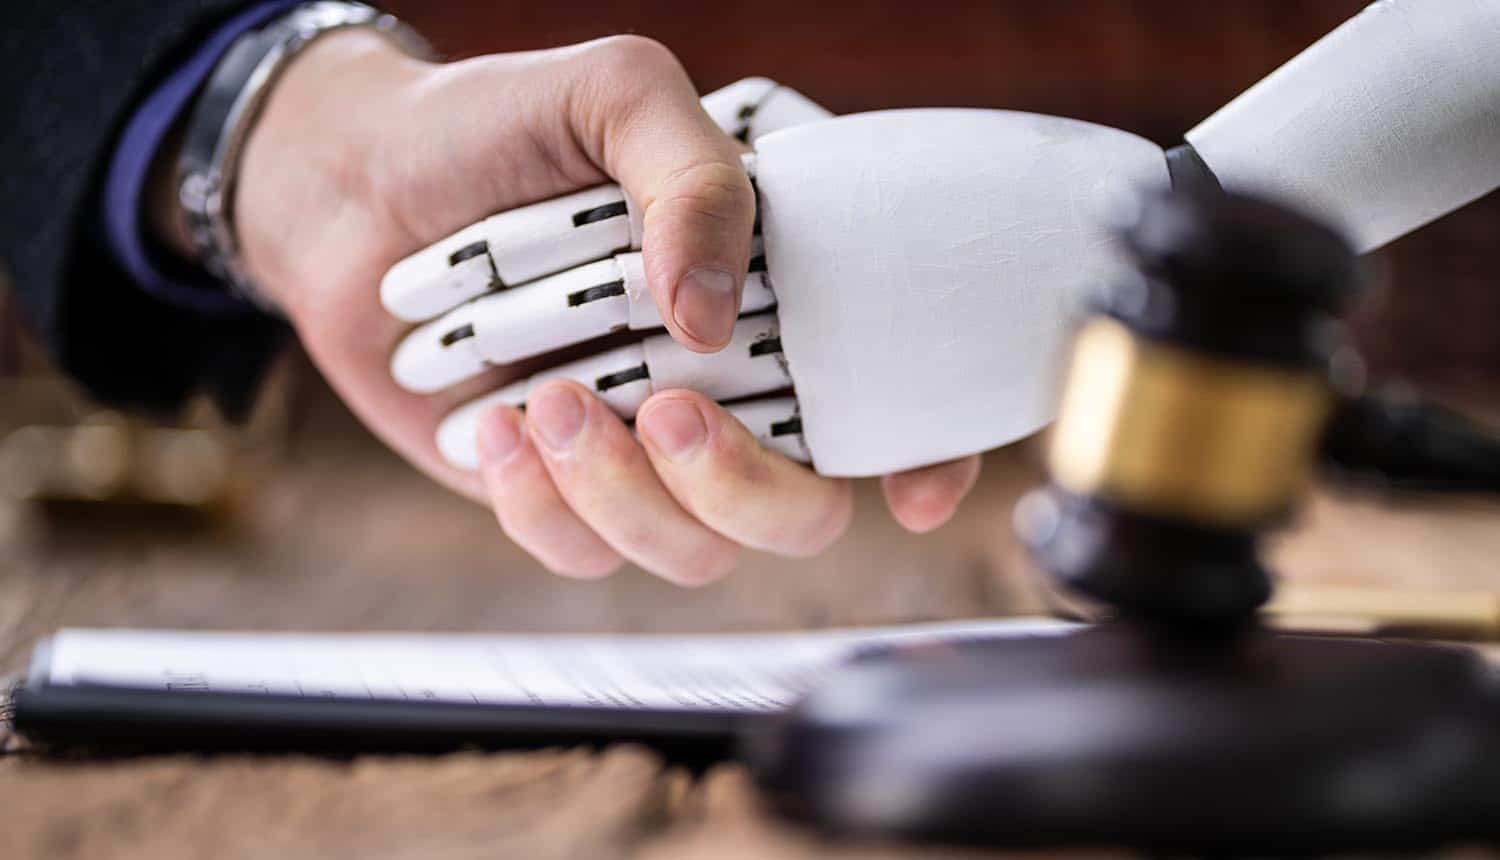 Robot shaking hands with judge near gavel showing the need for AI regulation